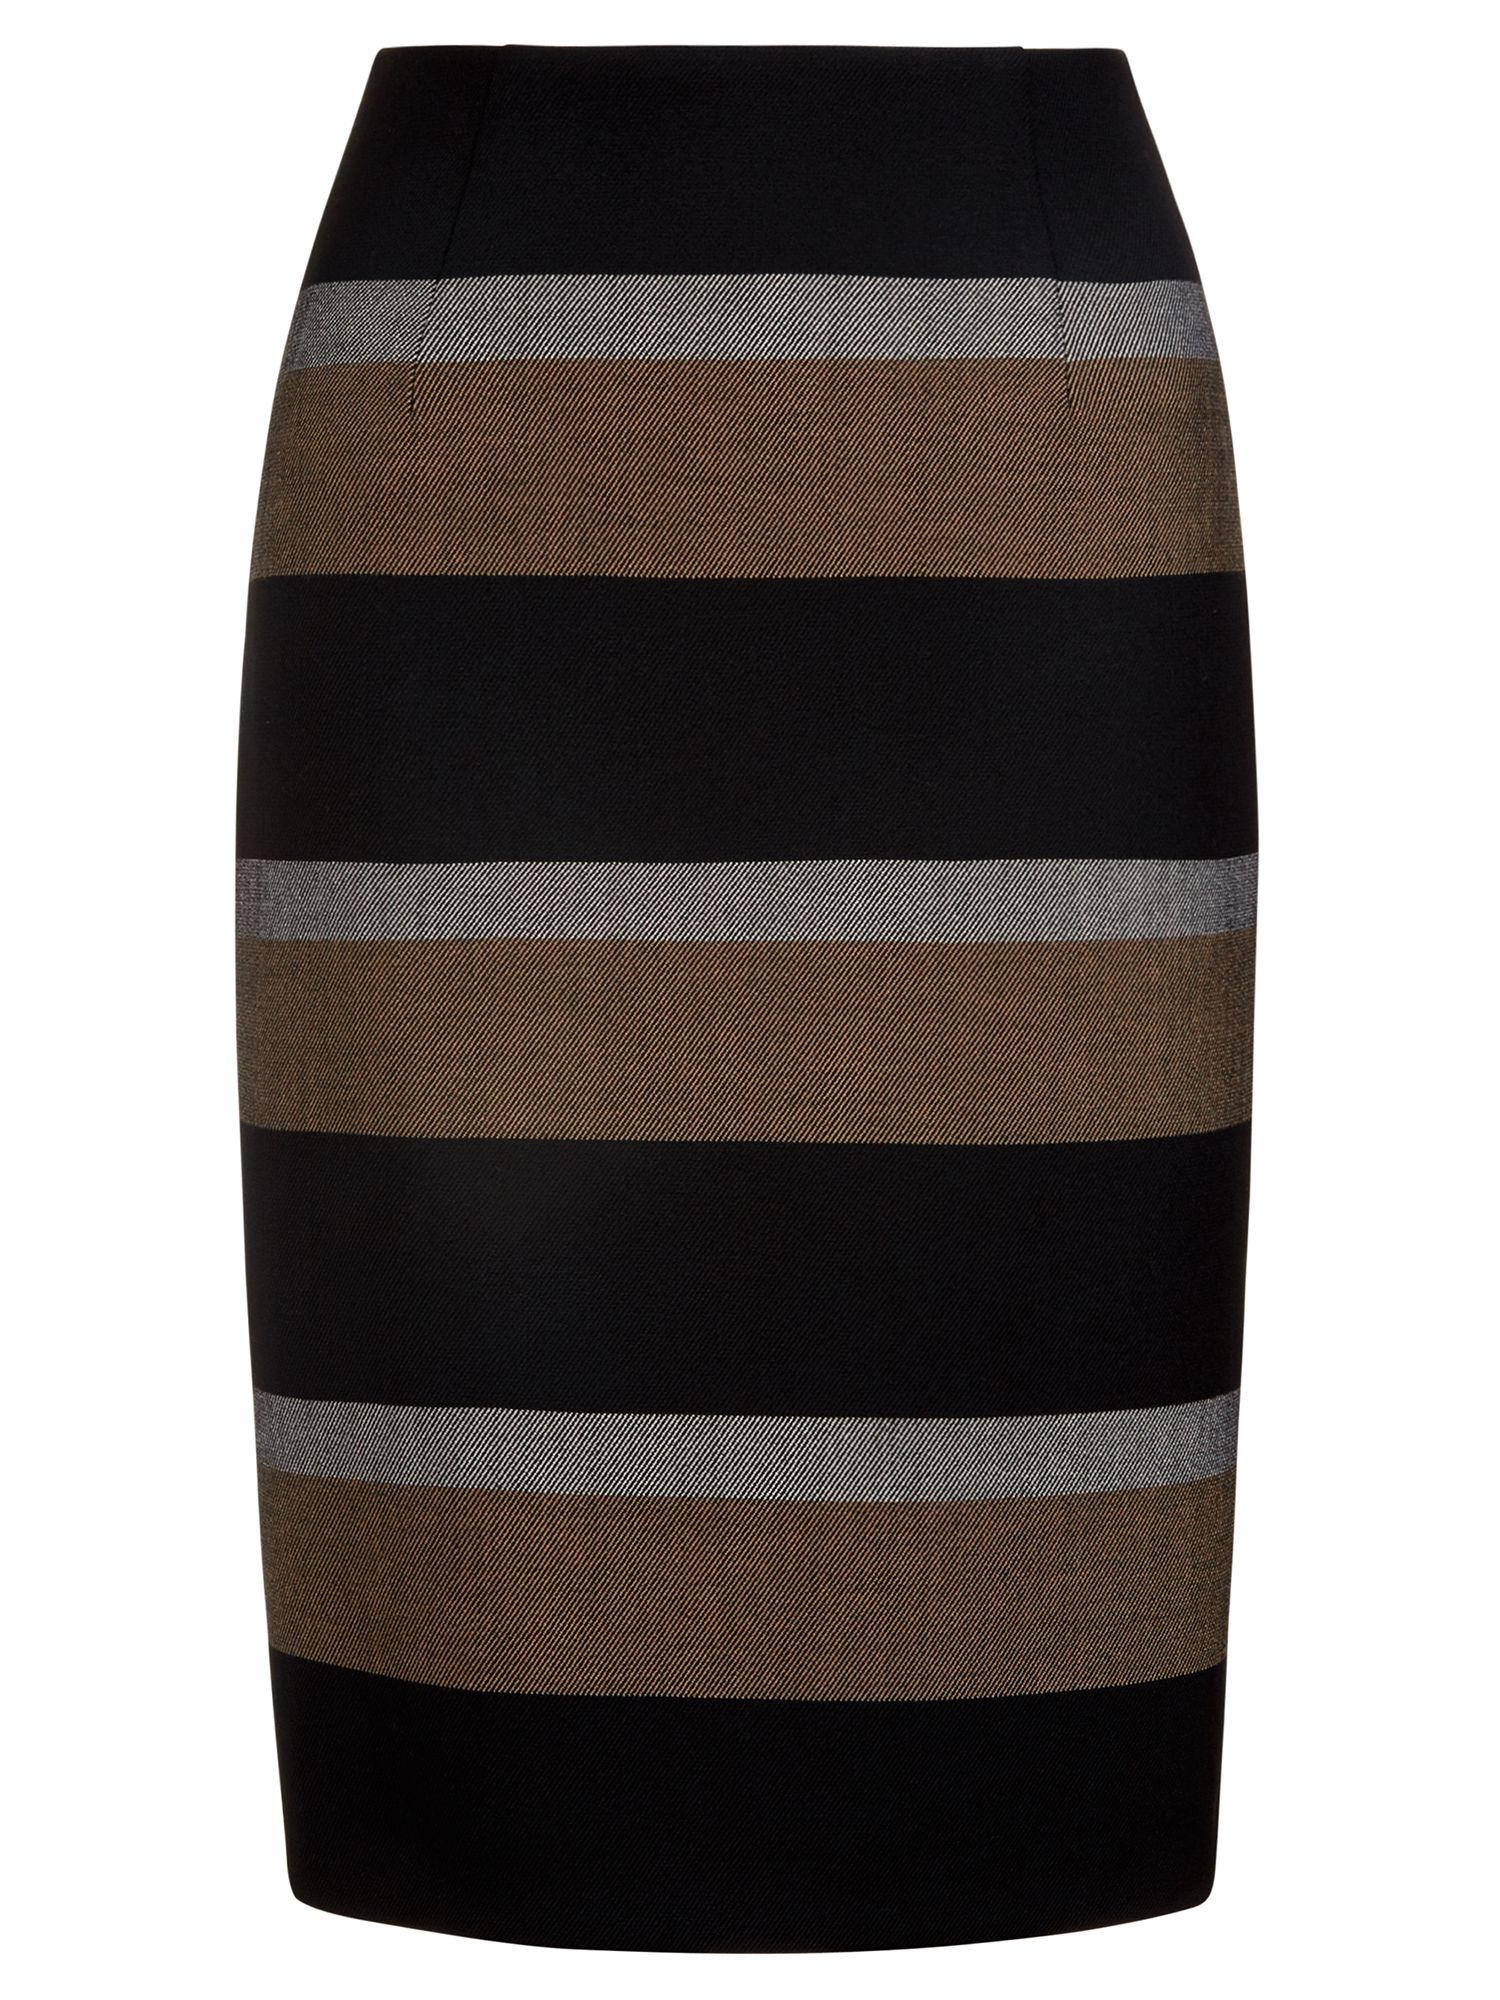 Hobbs Nora Skirt, Black